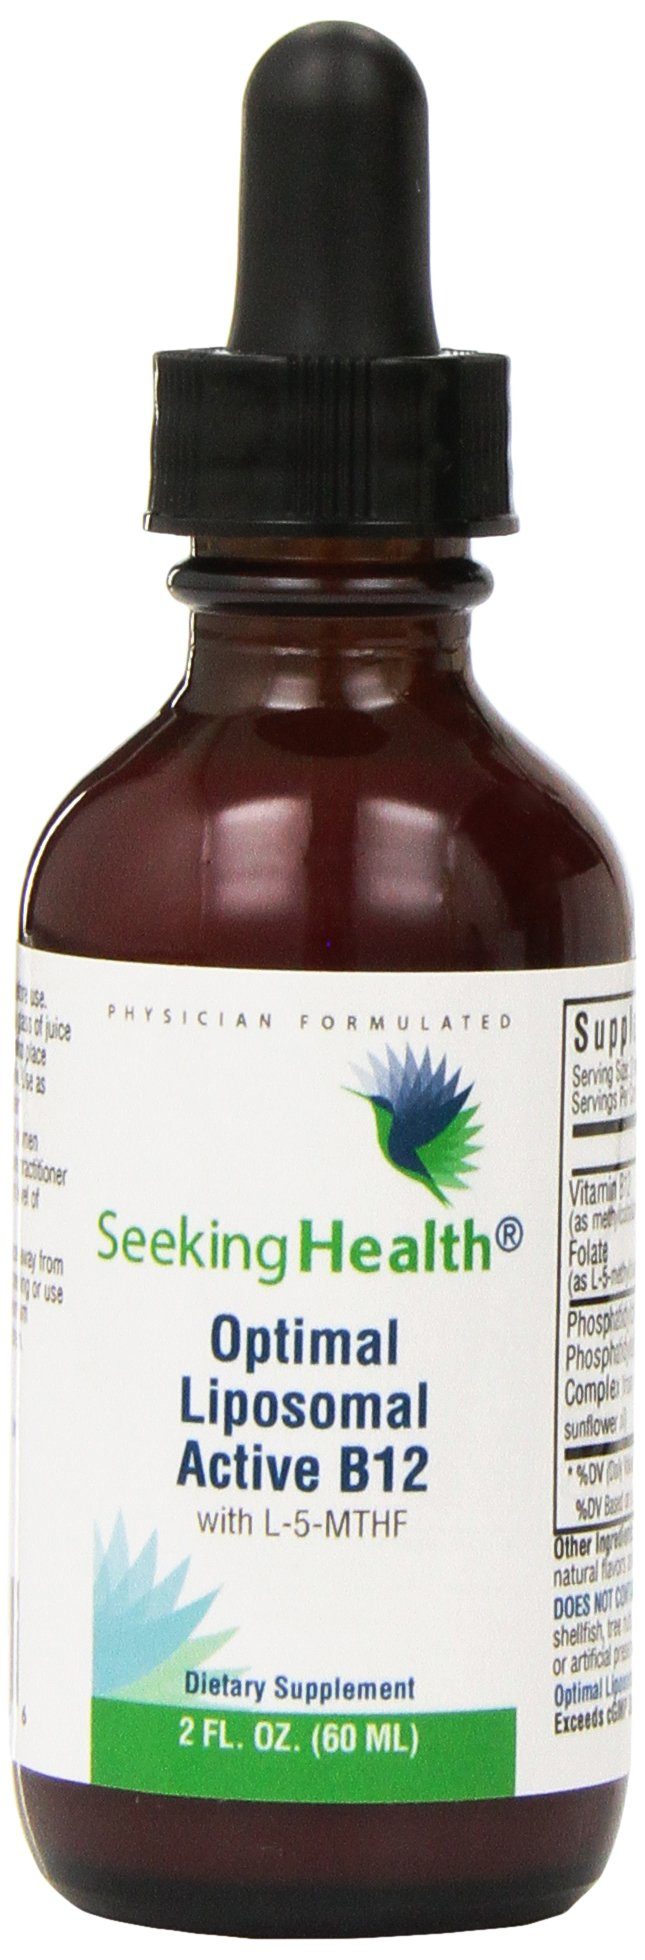 Liposomal B12 | Optimal Liposomal Active B12 With L-5-MTHF | Non-Soy | Non-GMO | Seeking Health